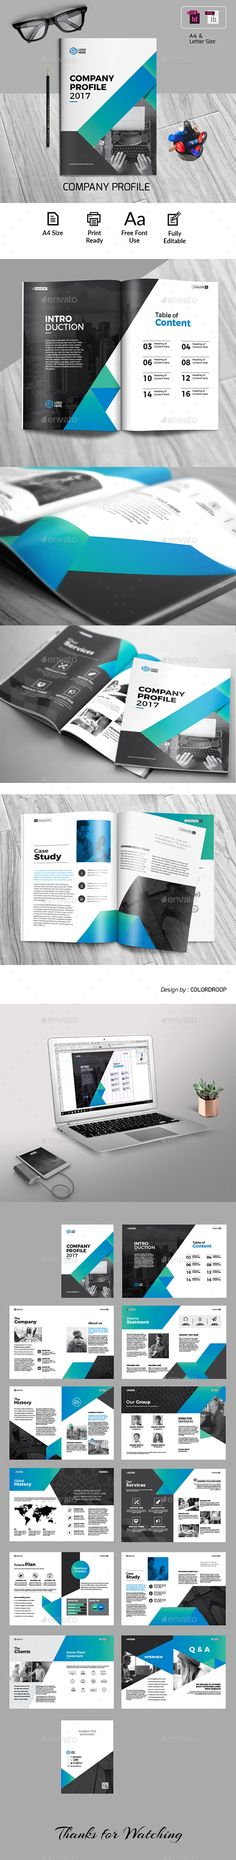 Clean and Professional Company Profile Template InDesign INDD - 16 - professional profile template